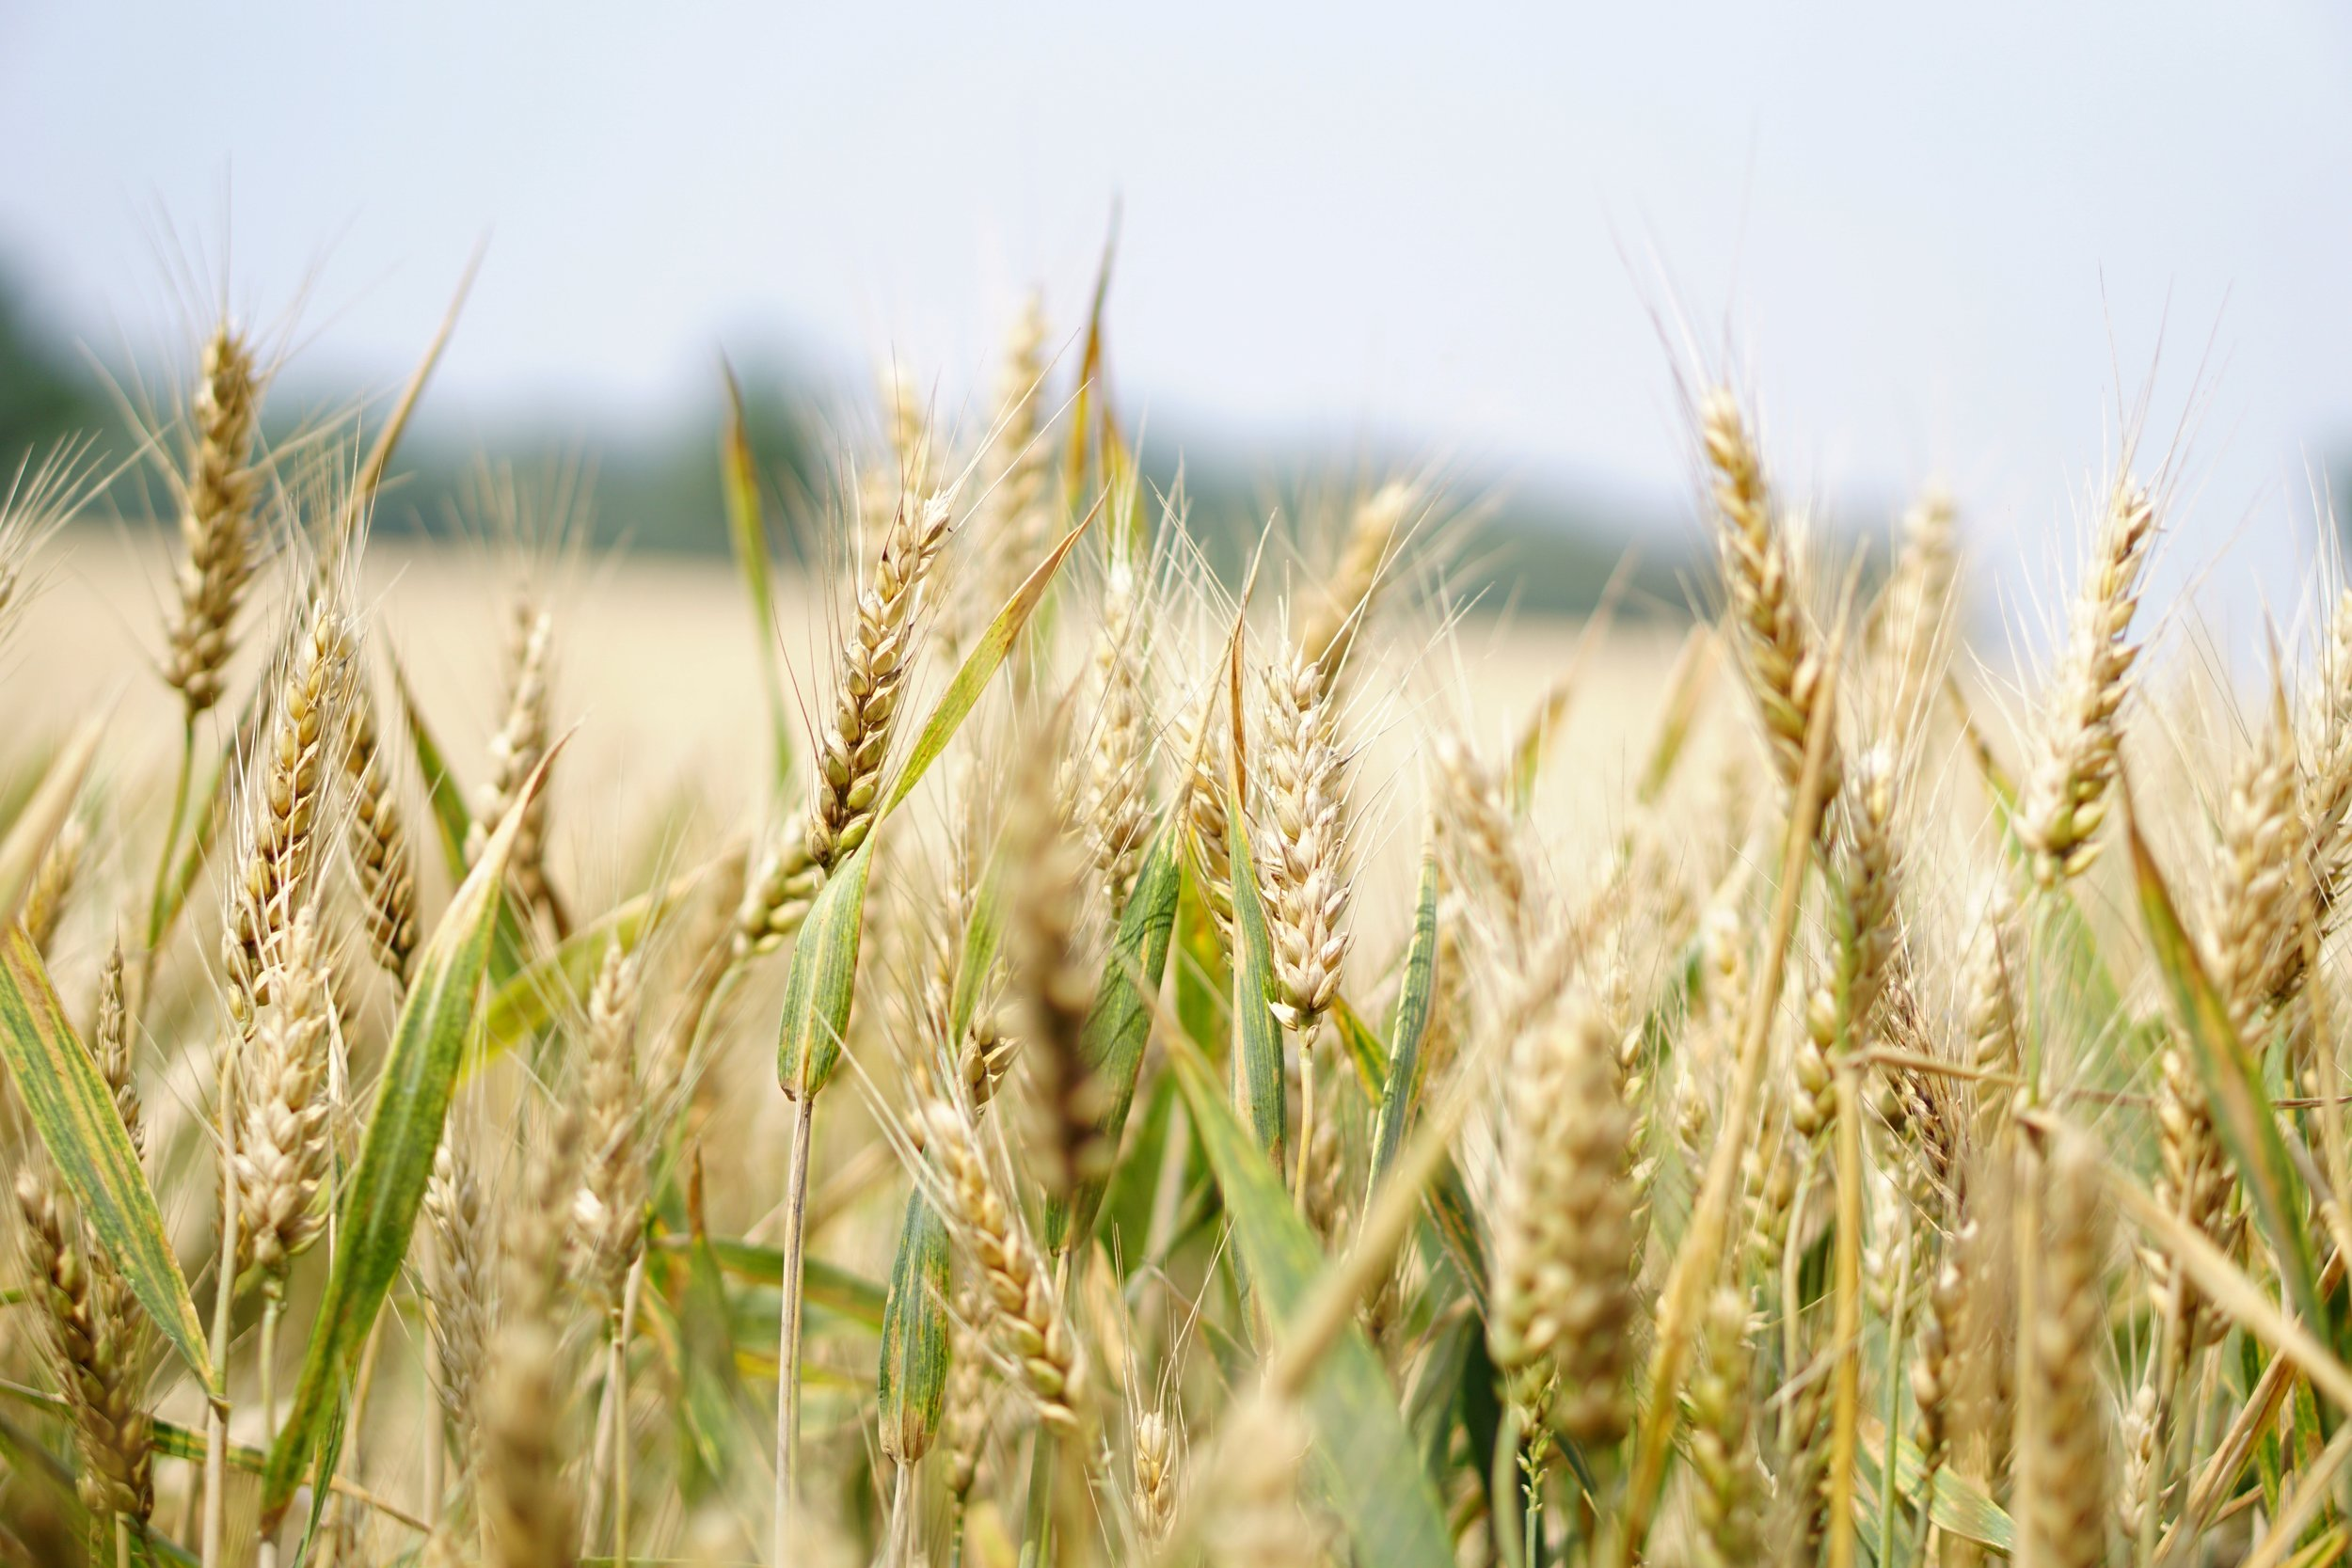 A variety of grasses, including wheat, will be used to make a new kind of compostable container. Image source: Pexels.com